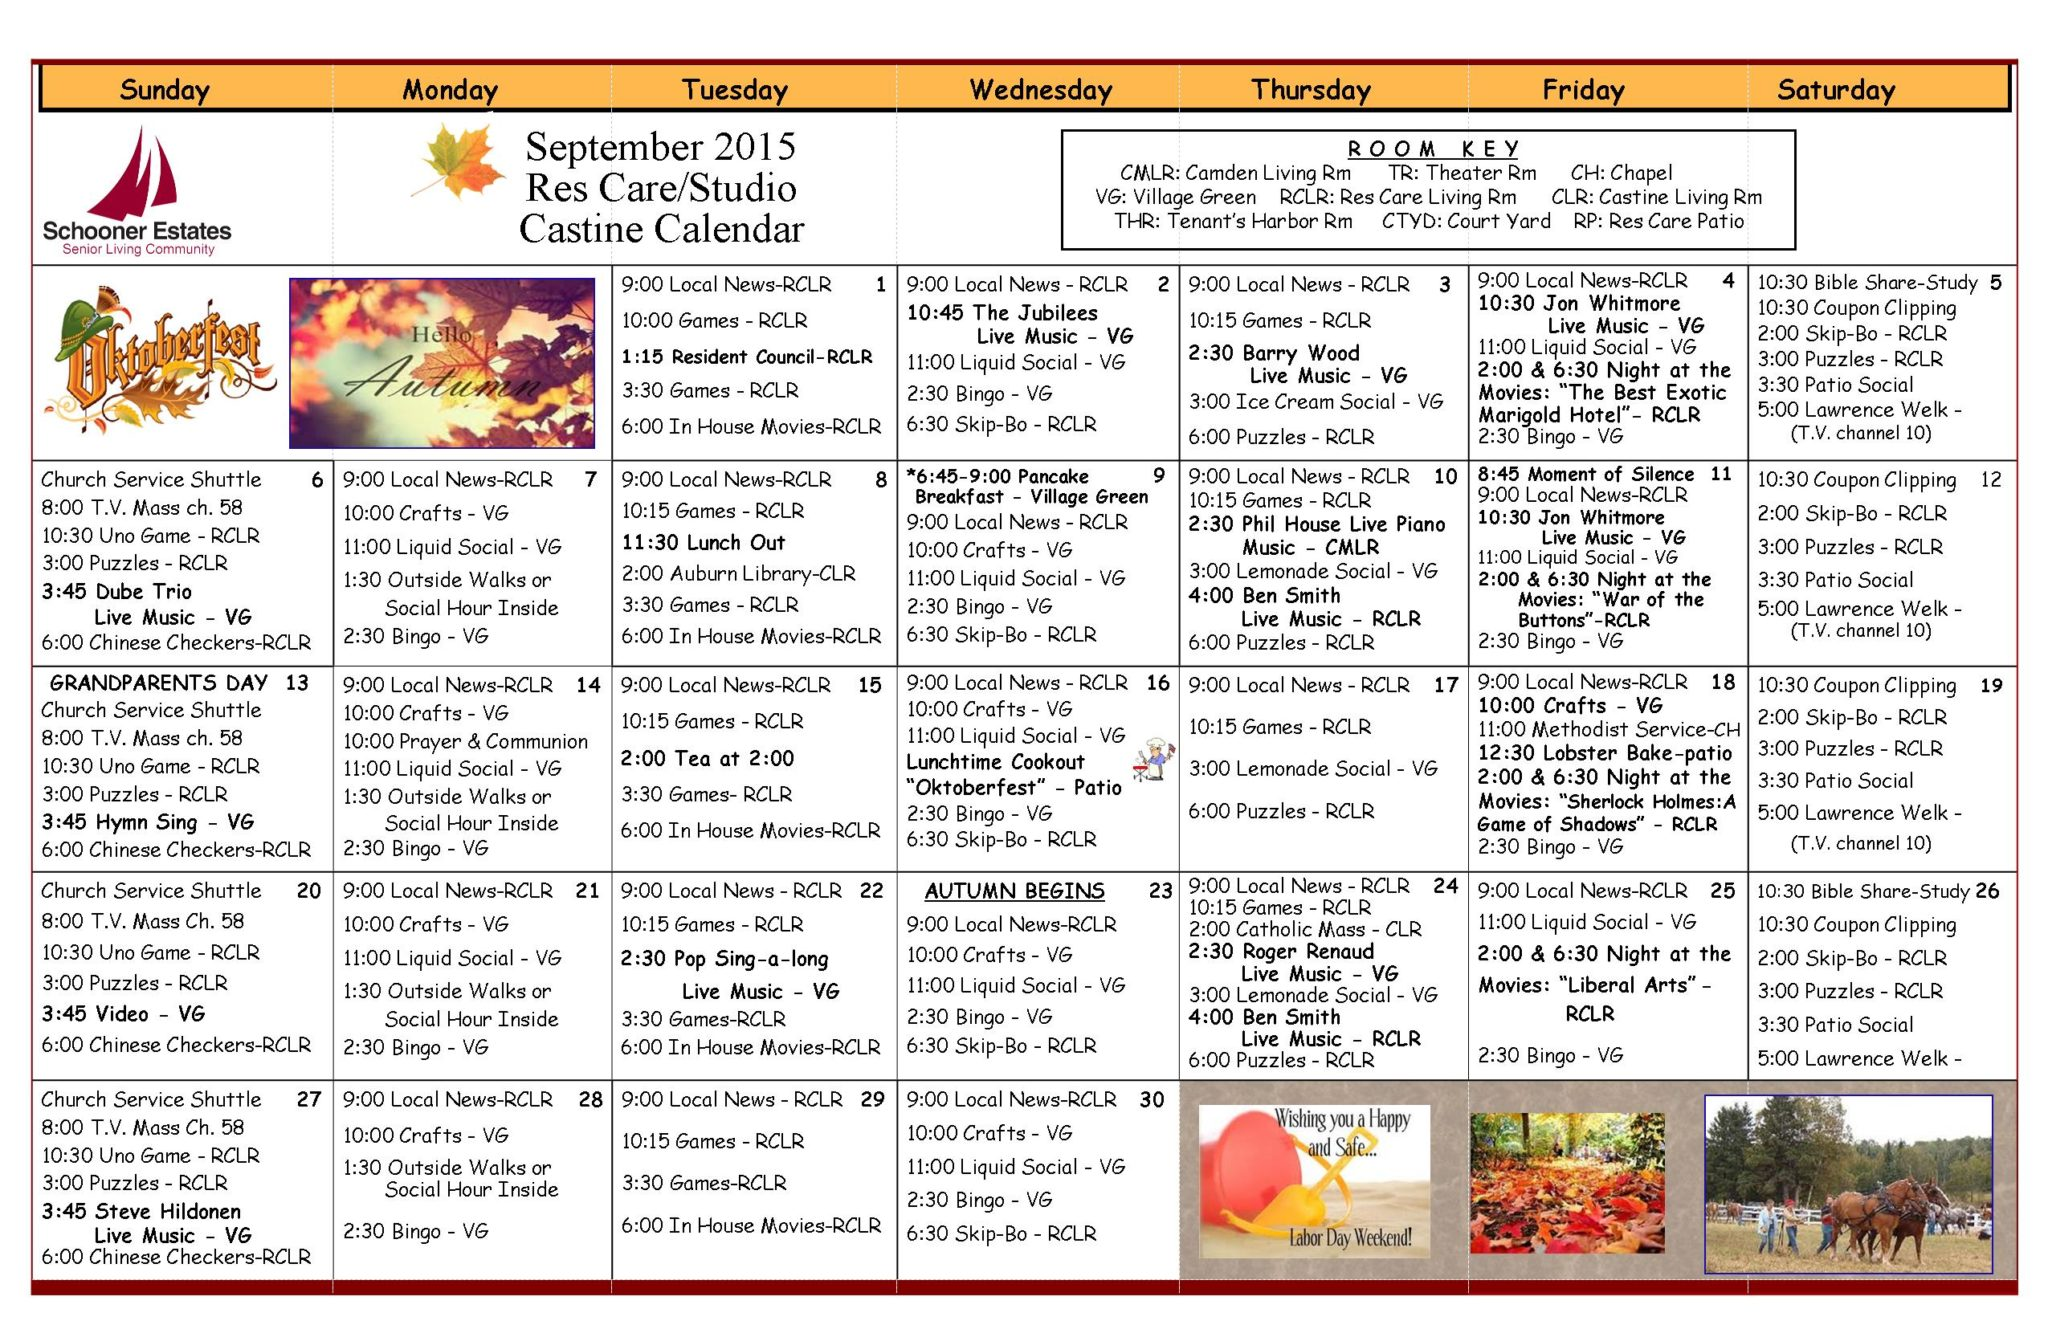 September 2015 Residential Care Calendar